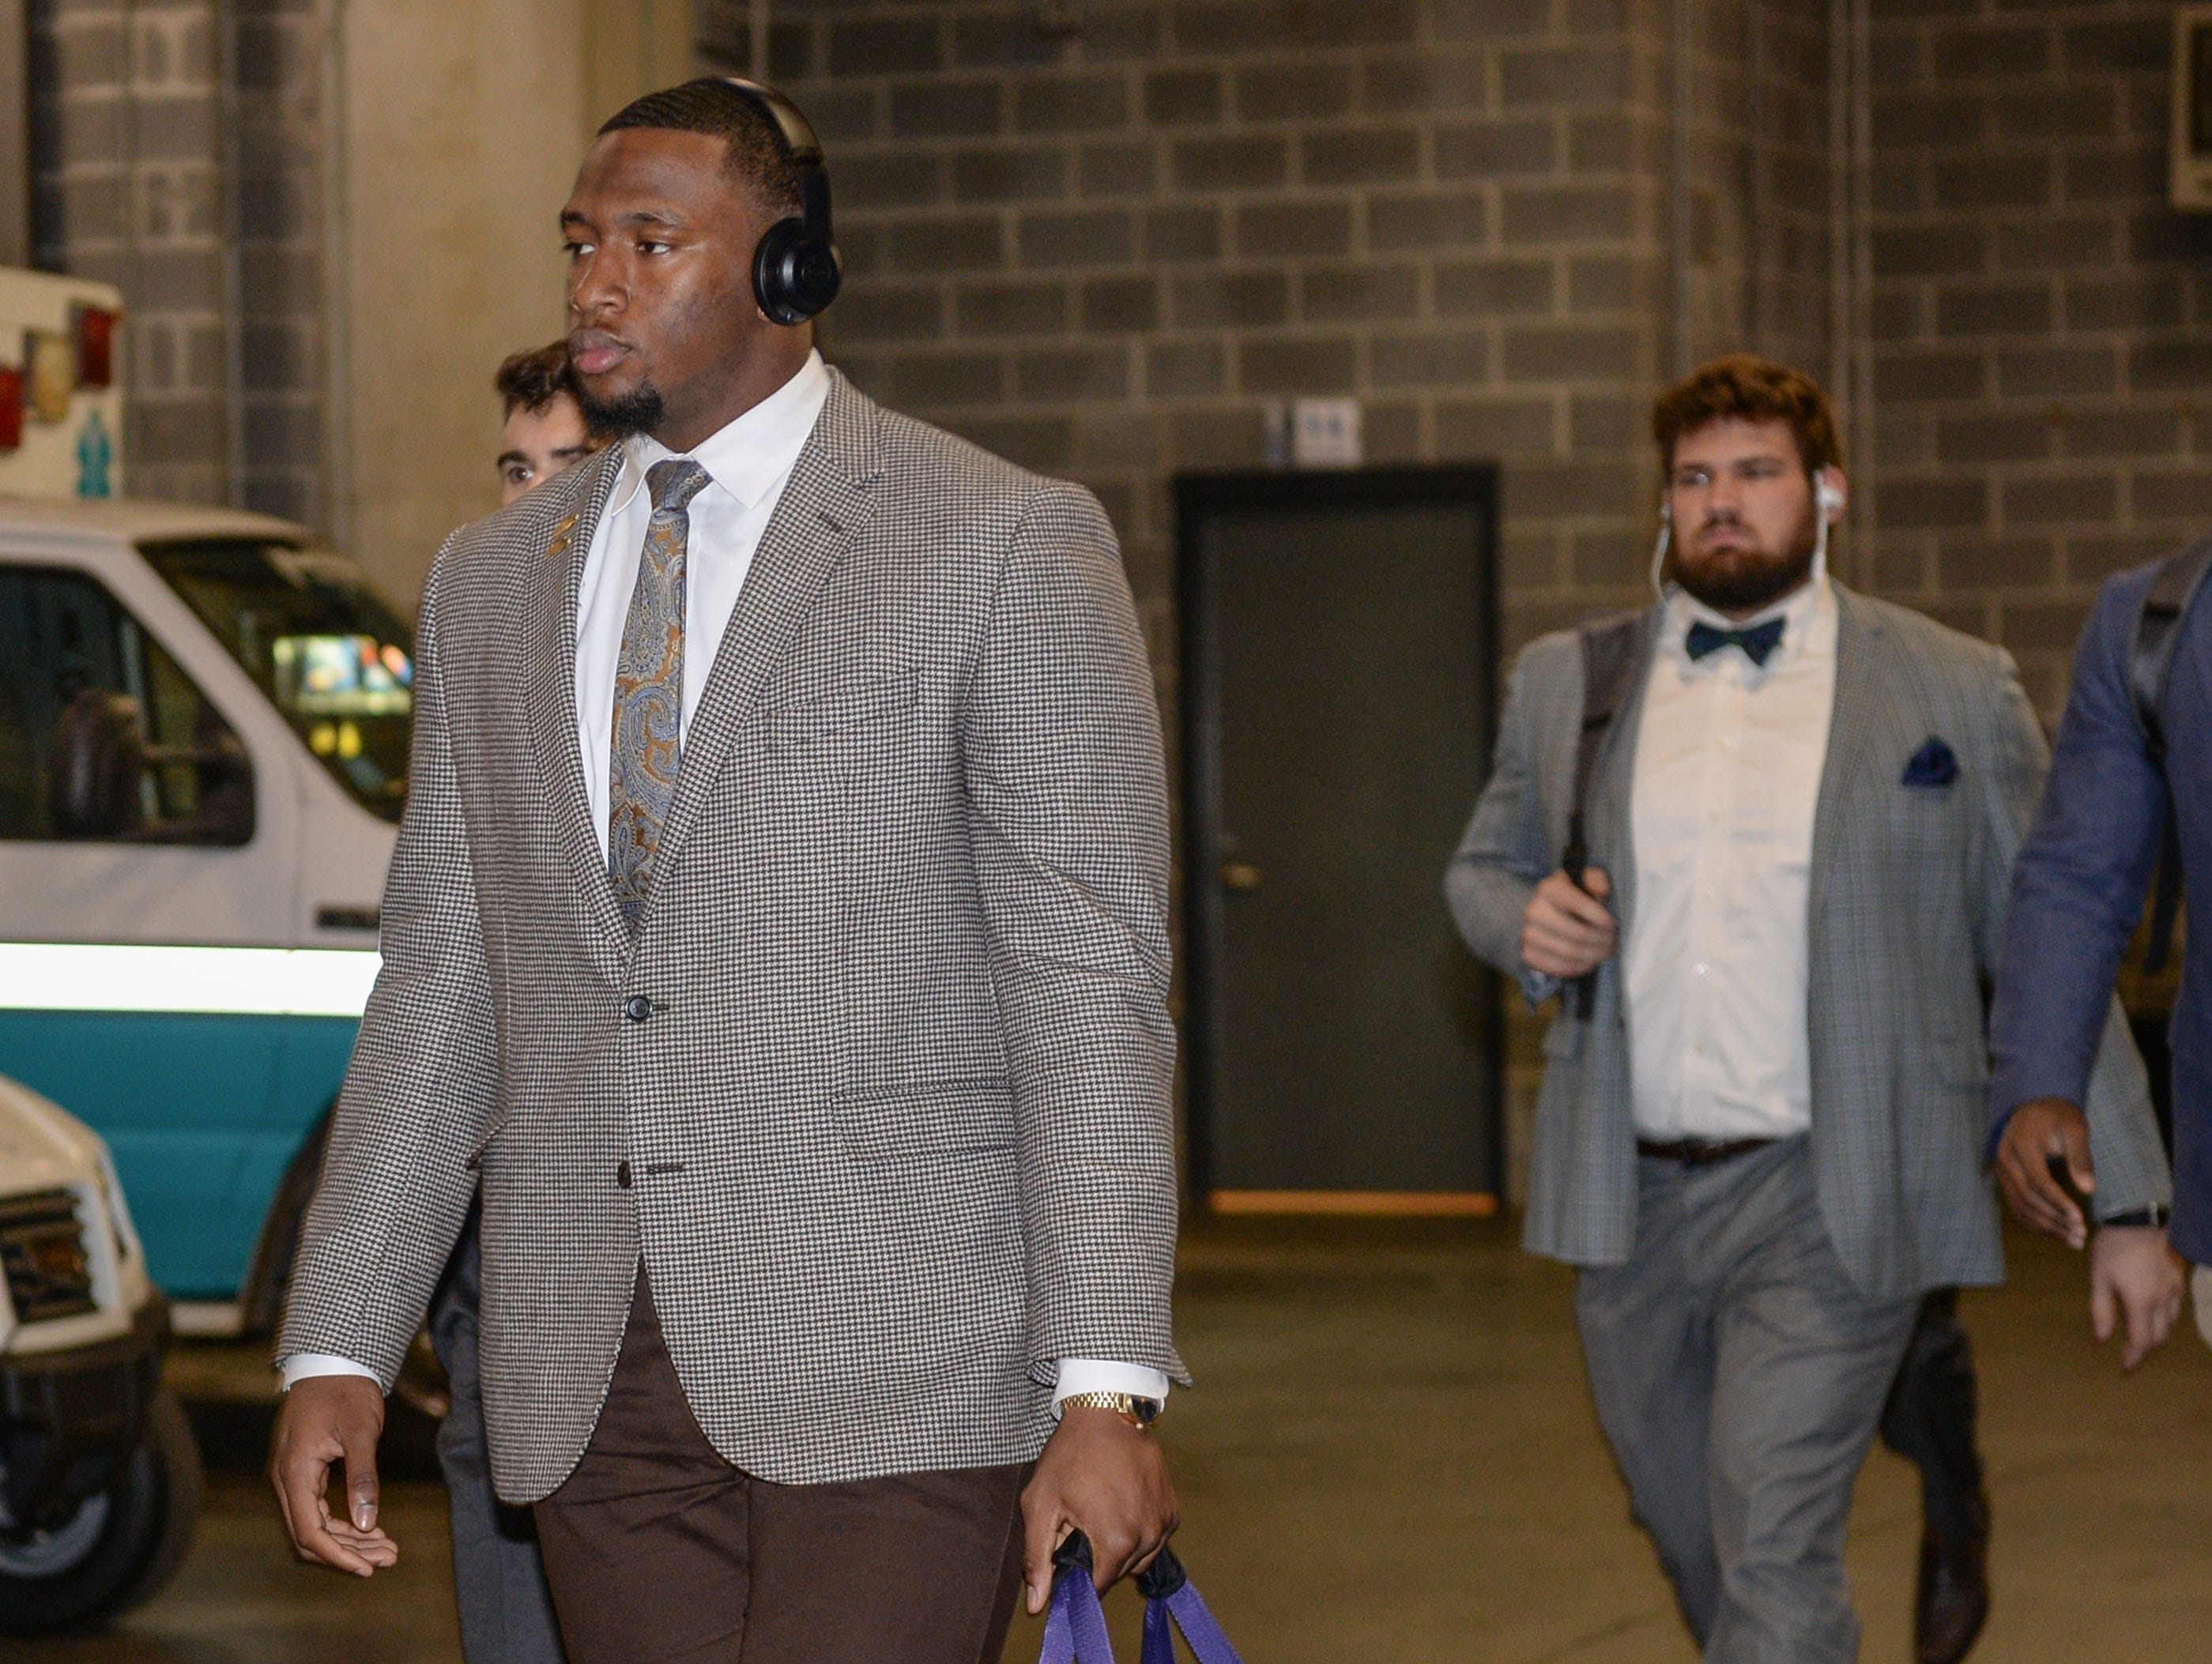 Clemson defensive lineman Clelin Ferrell (99) arrives before the game with Pittsburgh at the Dr. Pepper ACC football championship at Bank of America Stadium in Charlotte, N.C. on Saturday, December 1, 2018.